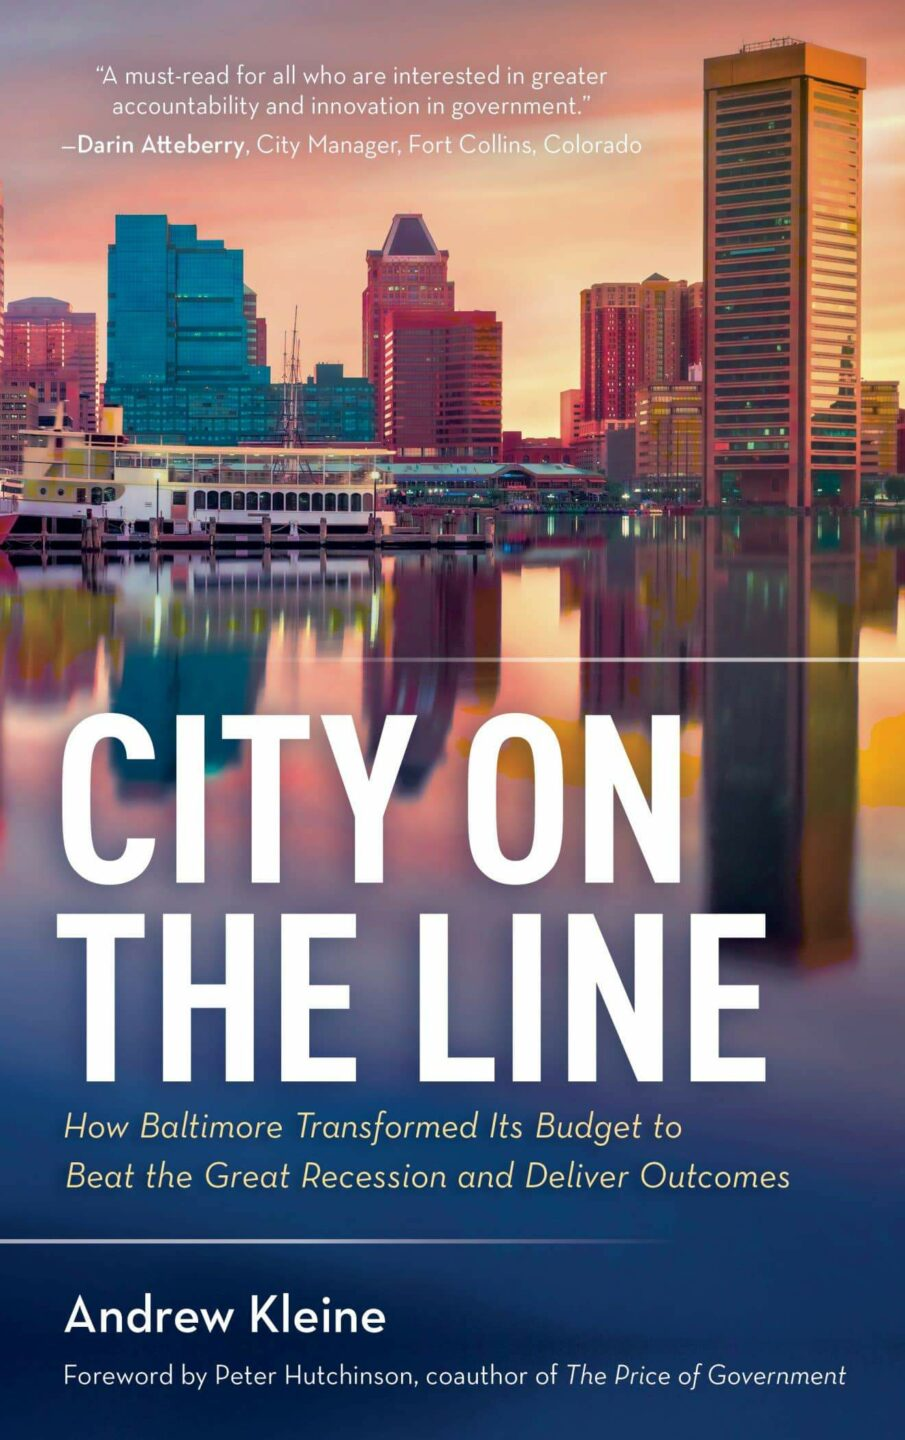 Local Author Writes Book on Changing Government Budgets